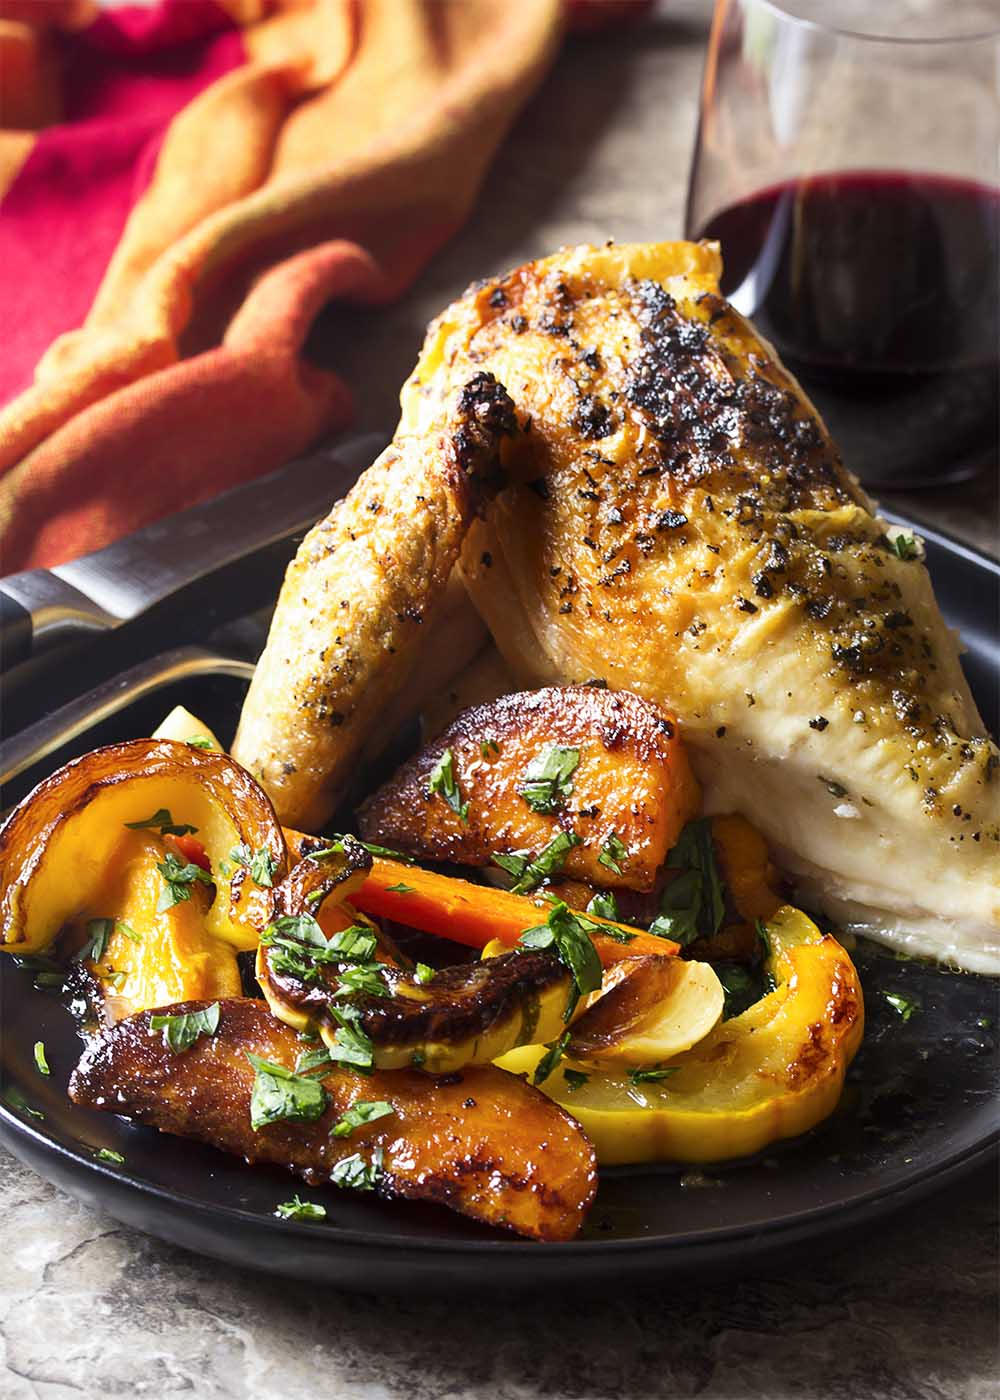 A portion of roasted chicken and root vegetables on a plate with a fork and knive and glass of wine.